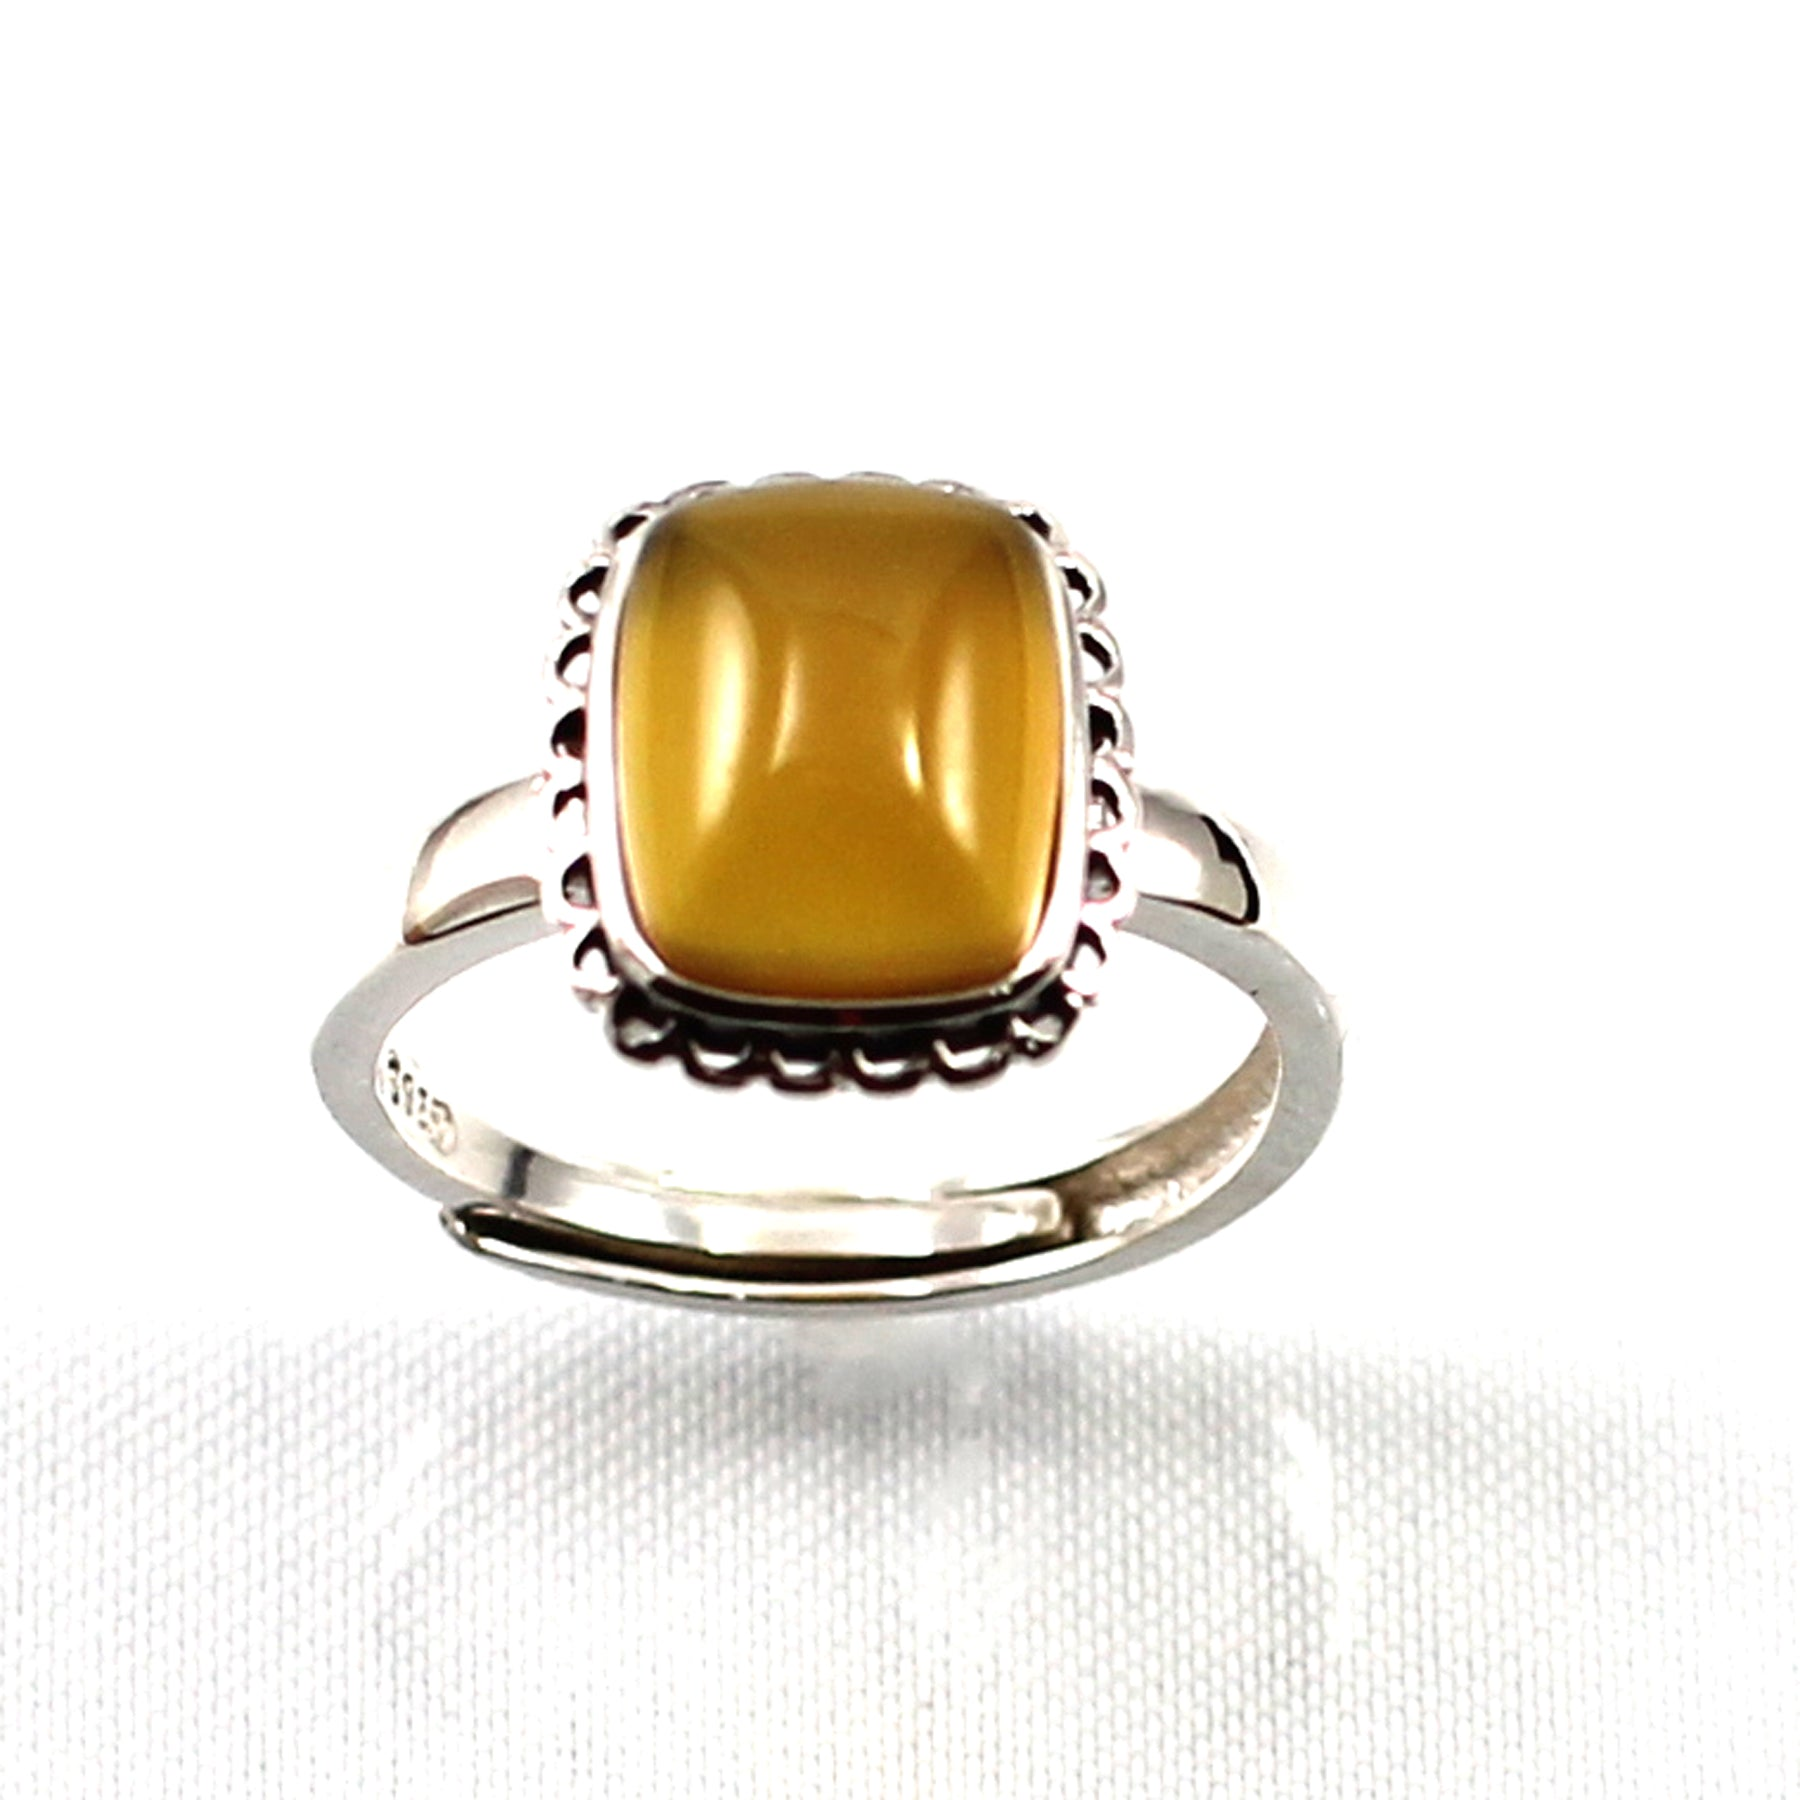 Details about  /Yellow Agate Solitaire Ring Hand-Crafted of Sterling Silver .925 TPJ